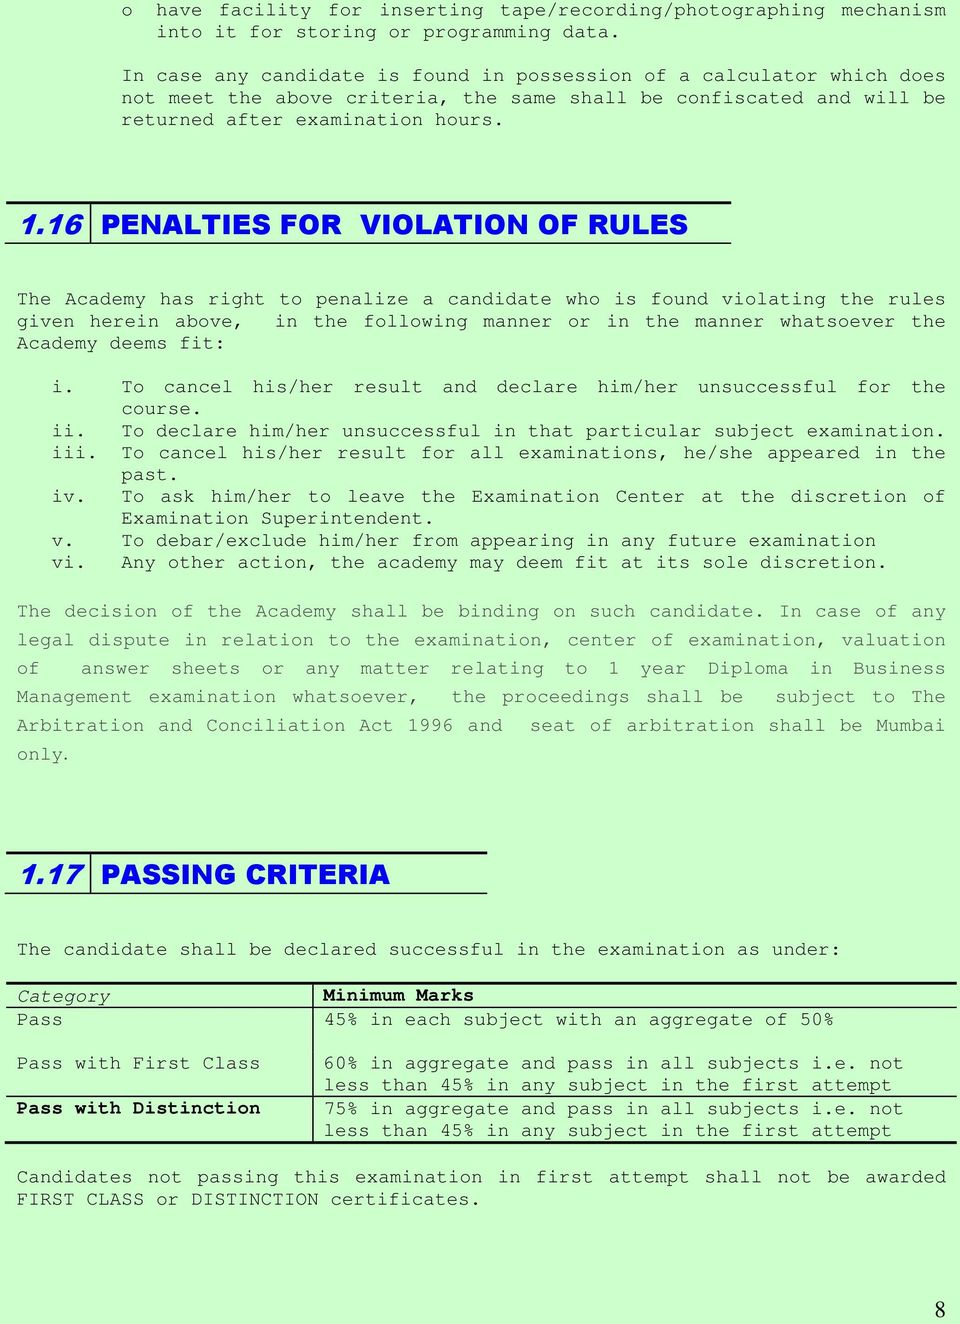 16 PENALTIES FOR VIOLATION OF RULES The Academy has right to penalize a candidate who is found violating the rules given herein above, in the following manner or in the manner whatsoever the Academy